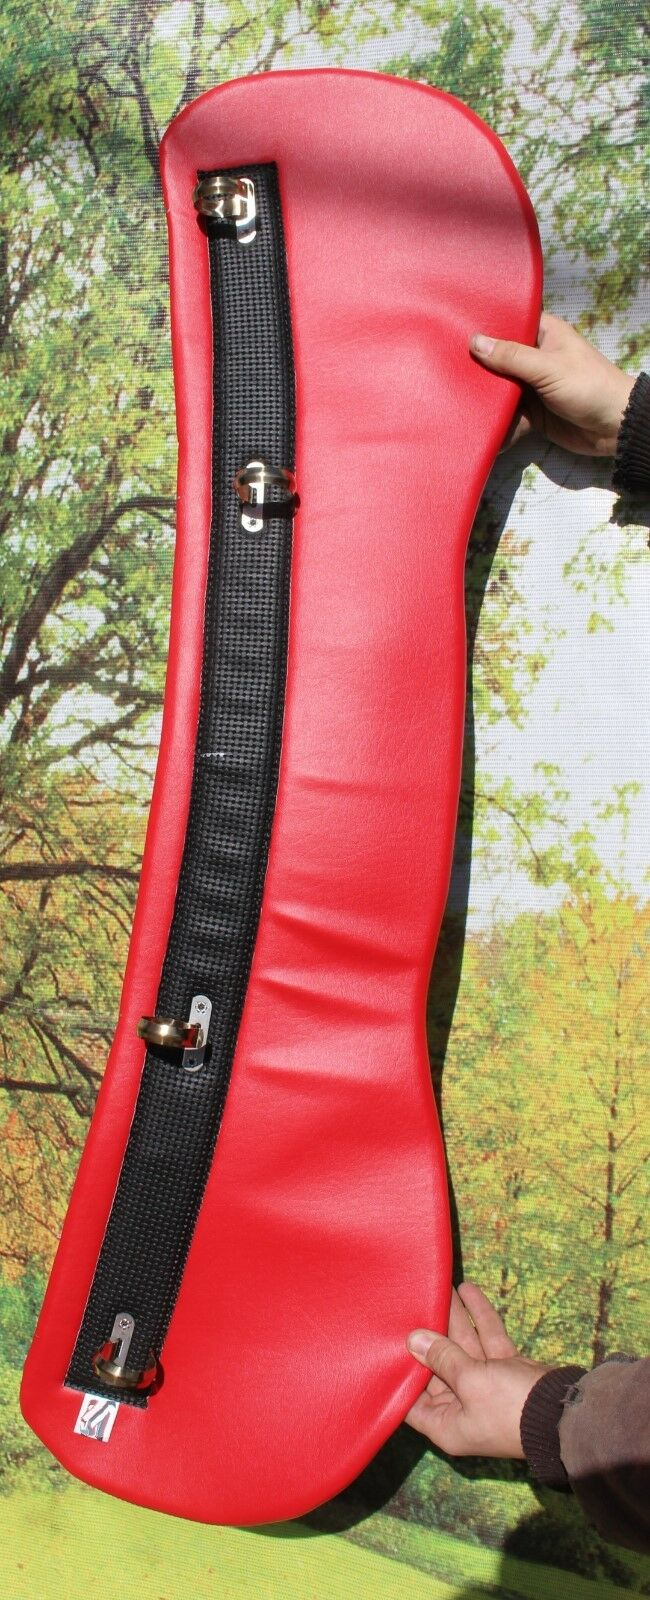 Worlds Beste horse drawn harness collar pad Permasoft super plush RED RED RED